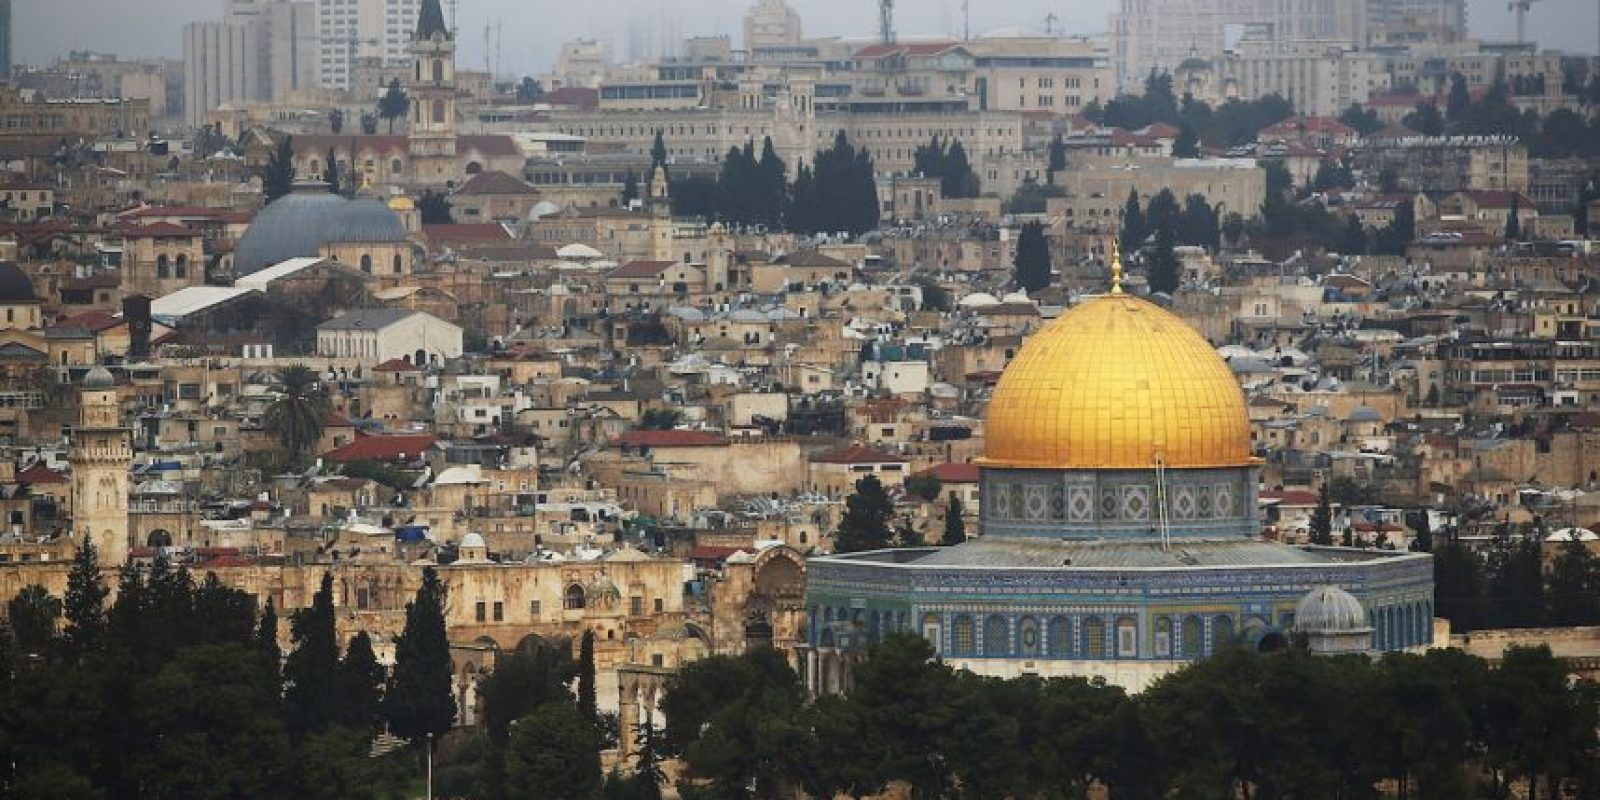 6. Israel Foto: Getty Images